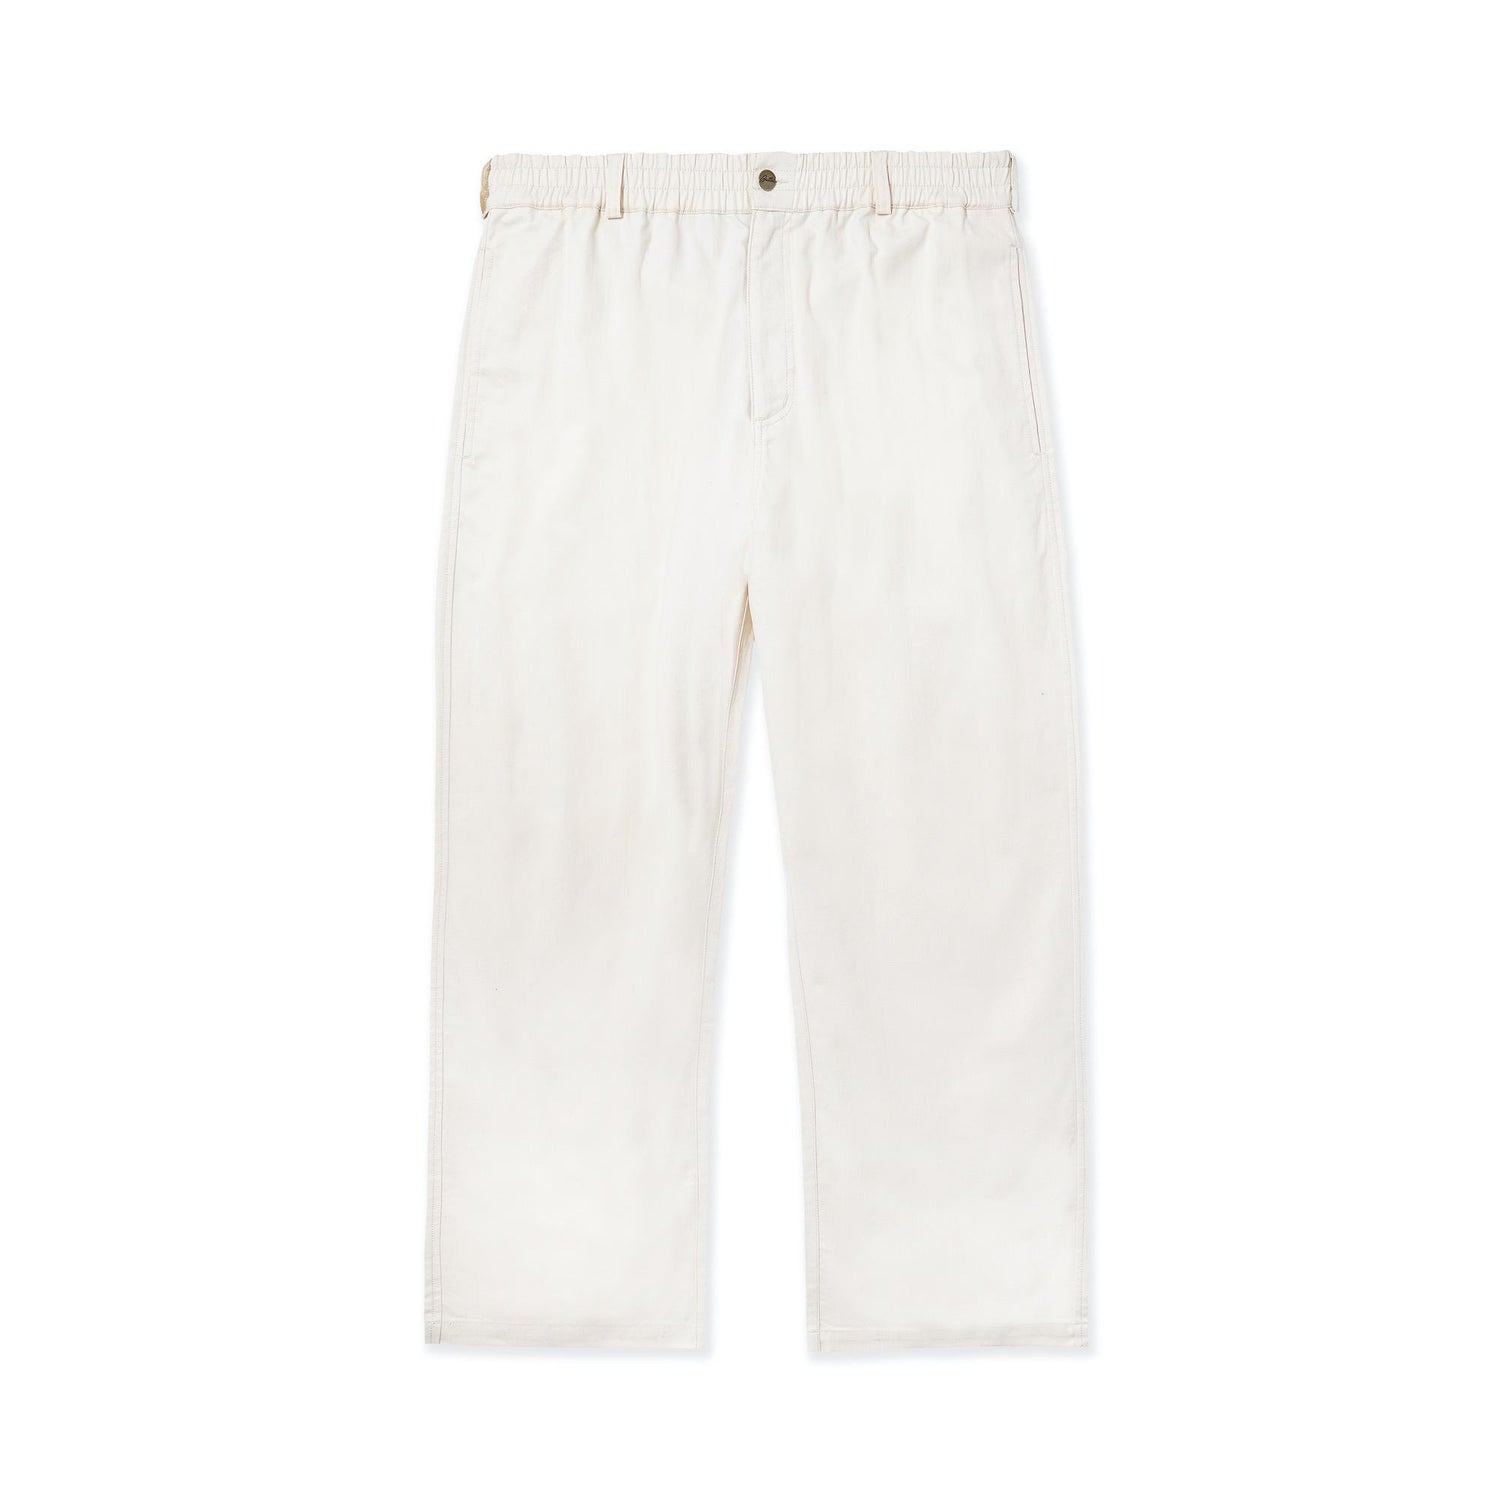 Herringbone Pants, Bone